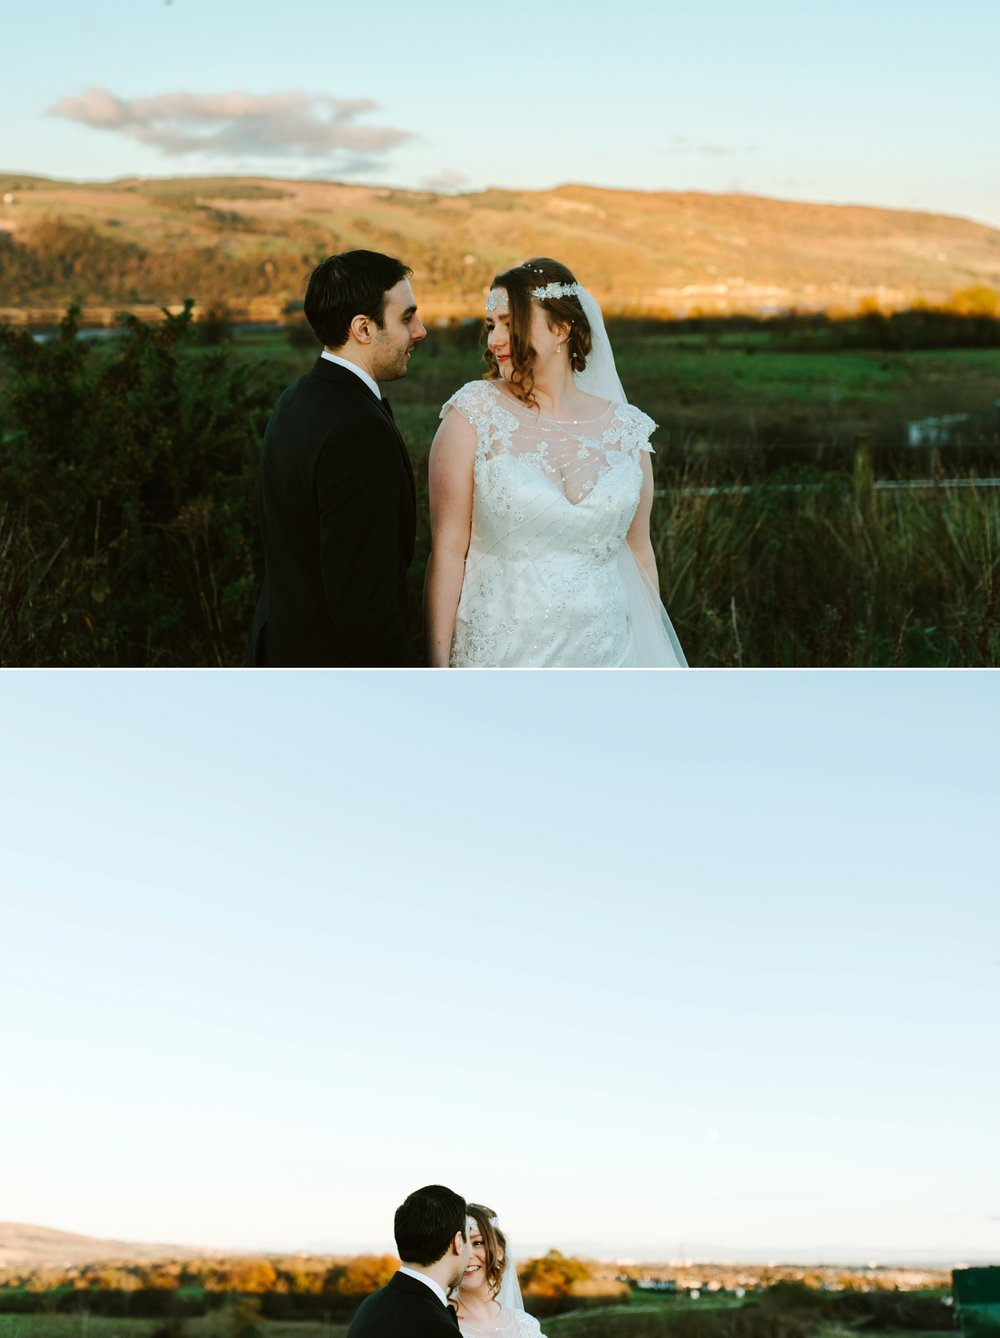 alternative-wedding-photography-scotland-claire-peter-366.JPG